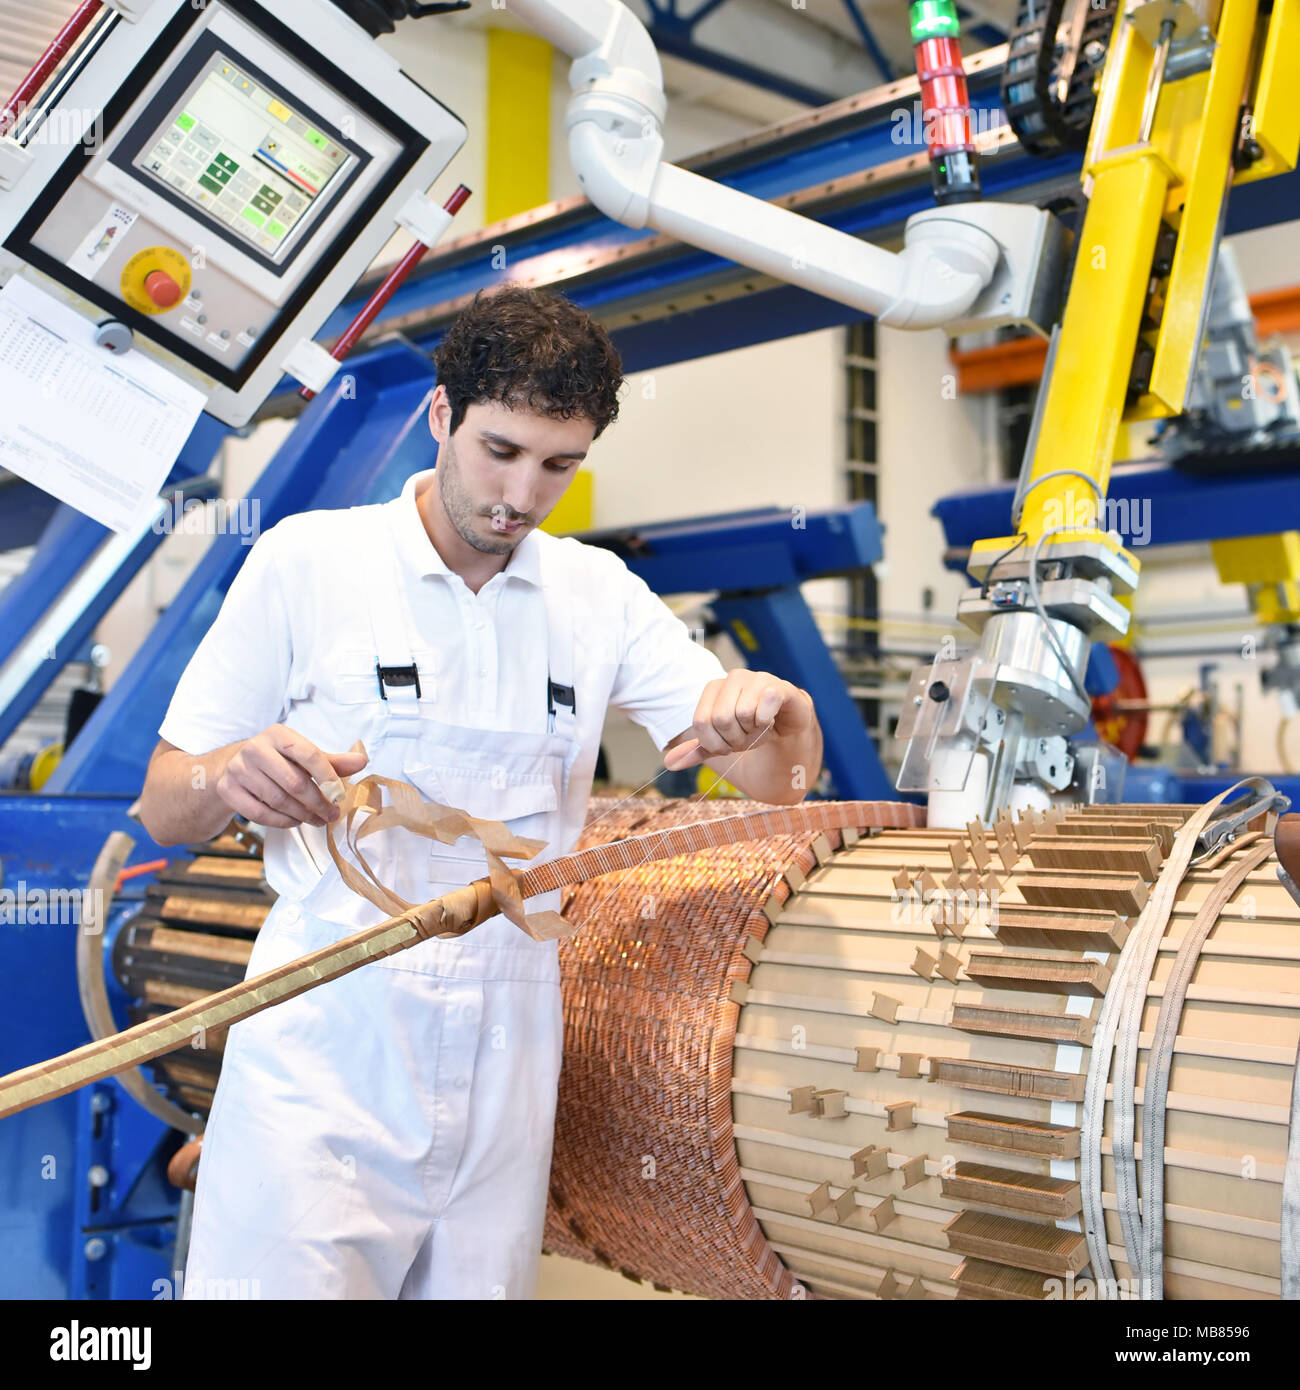 young mechanical engineering workers operate a machine for winding copper wire - manufacture of transformers in a factory - Stock Image